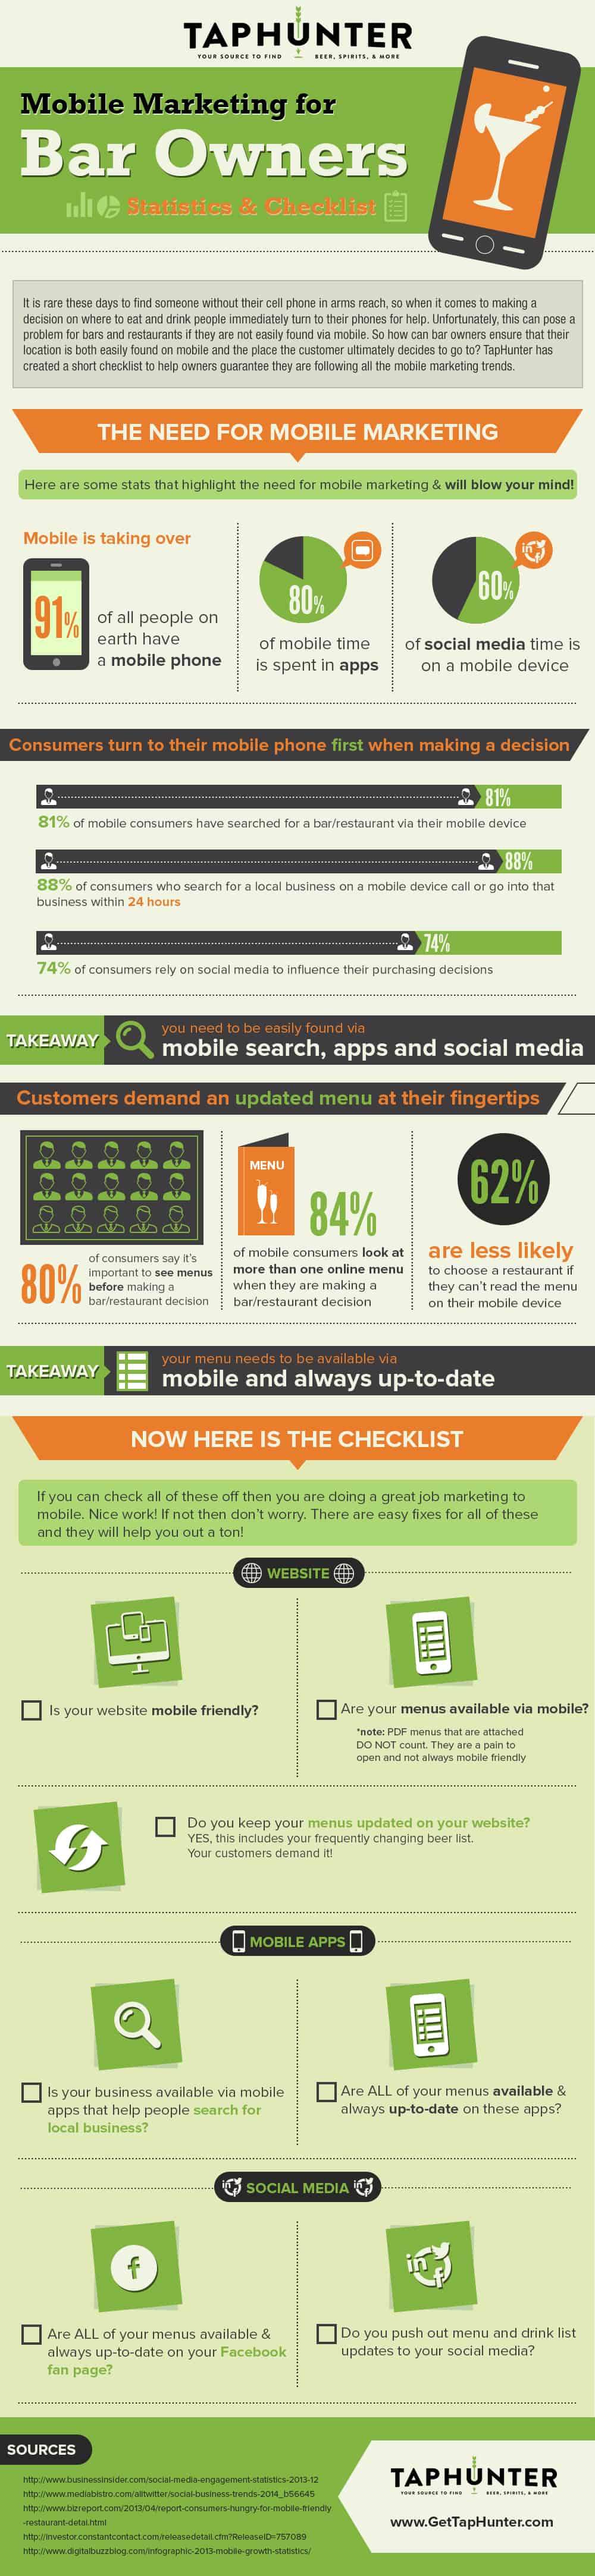 Mobile Marketing for bar owners [INFOGRAPHIC]